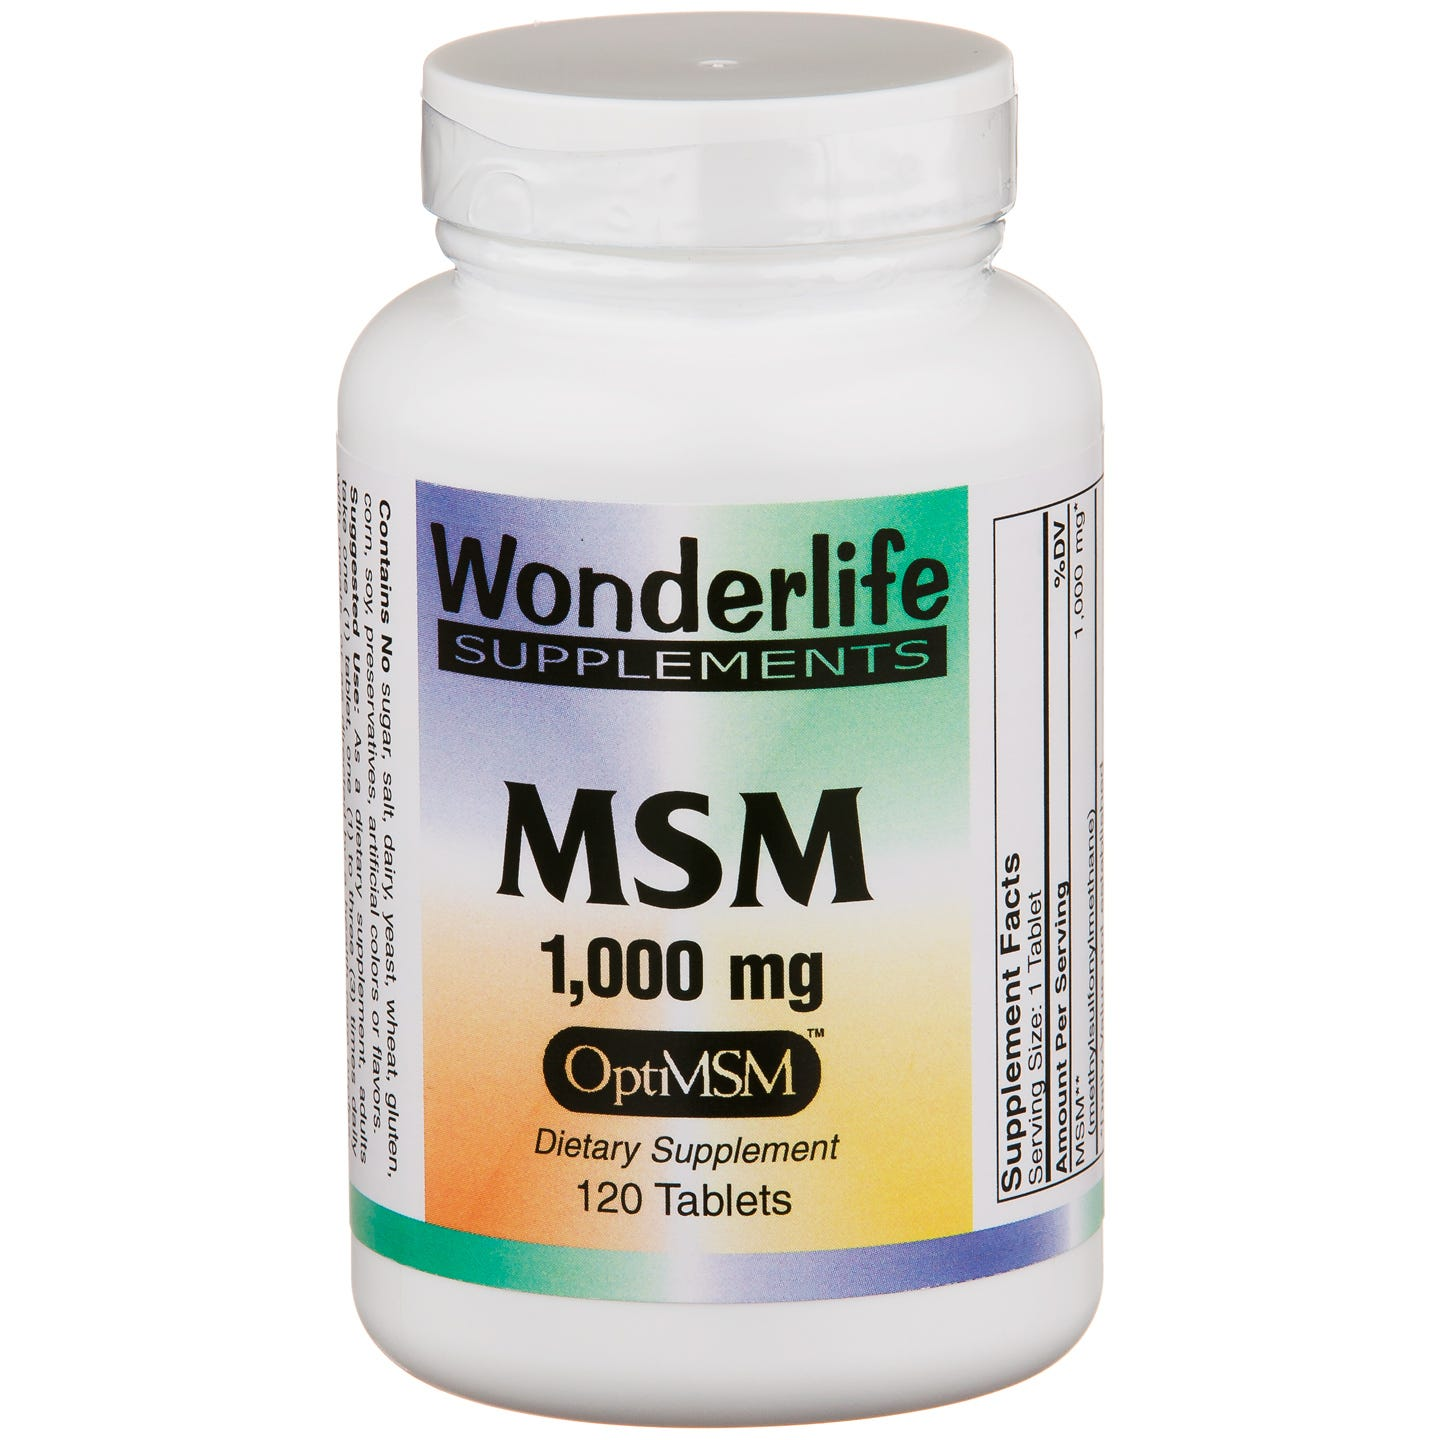 MSM 1000 mg with OptiMSM (120 ct) - Wonderlife - Rapid Diet Weight Loss Products Shop